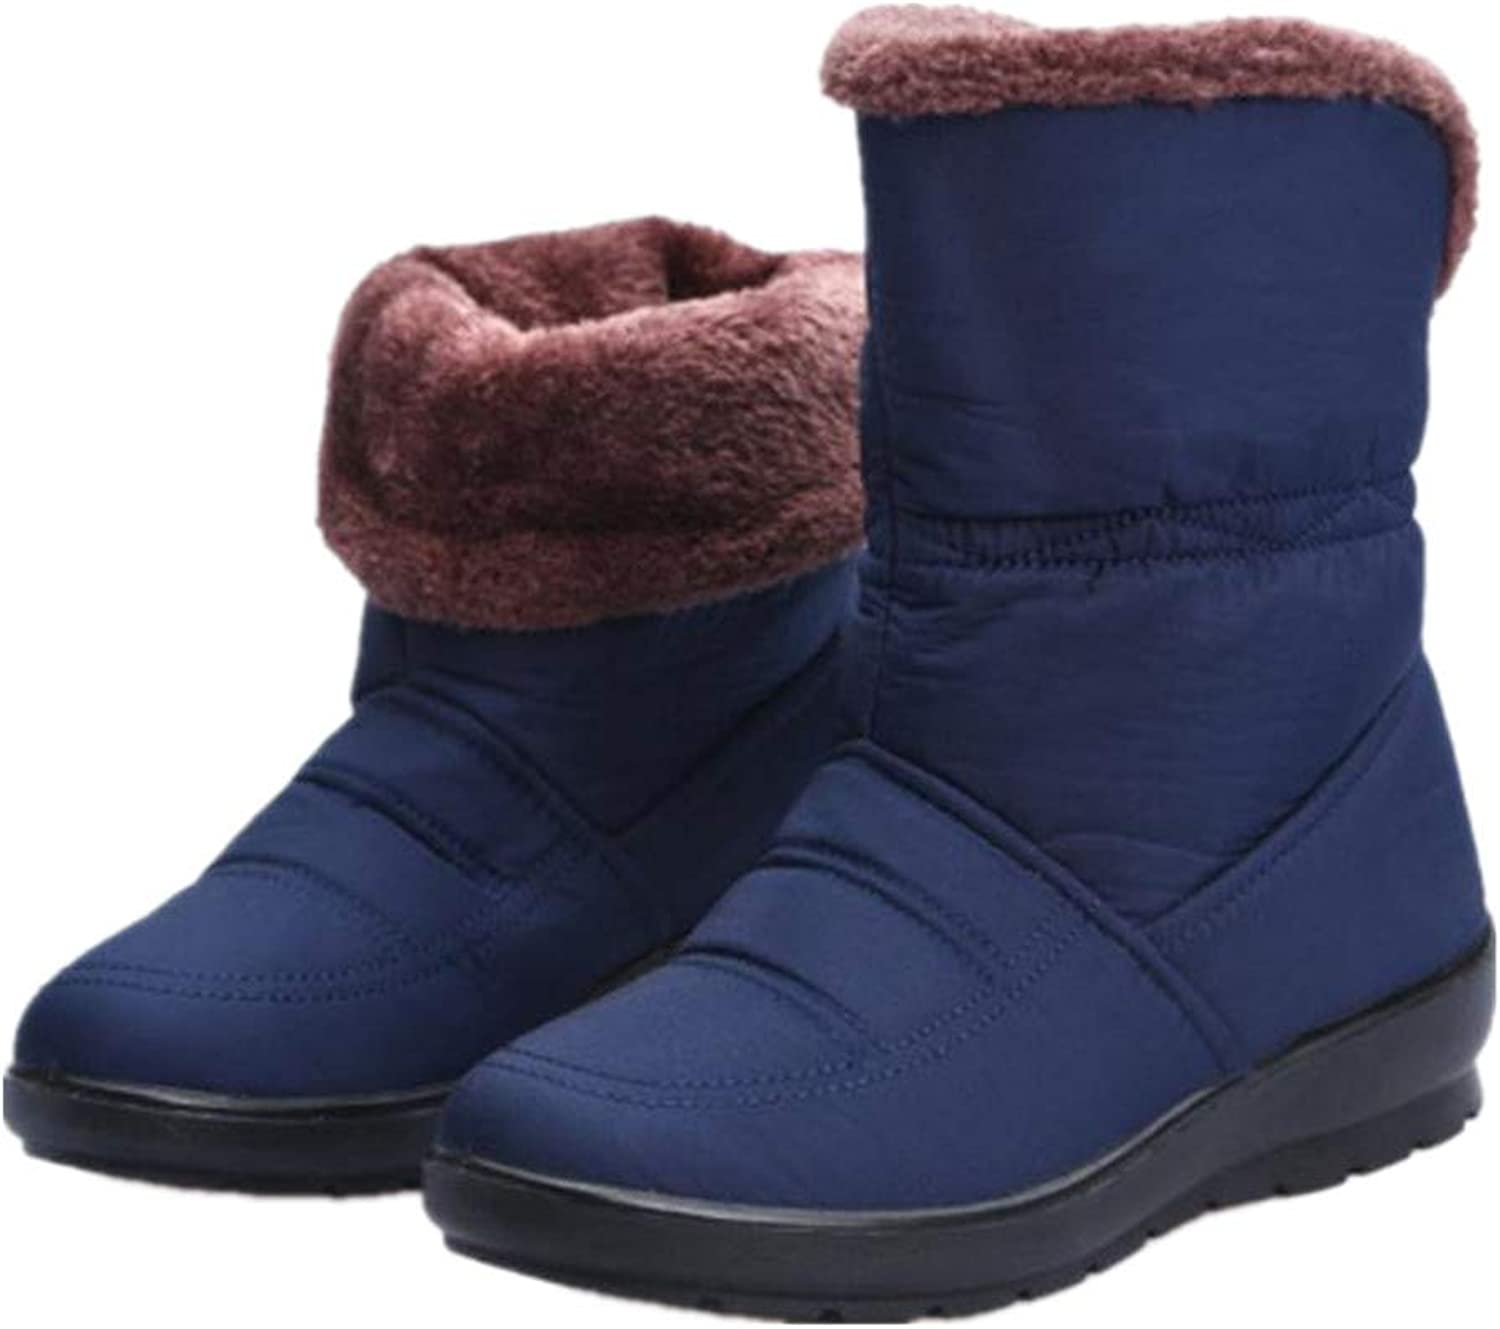 Winter Boots for Women Water Resistant Anti-Slip Fur Lined Snow Boot